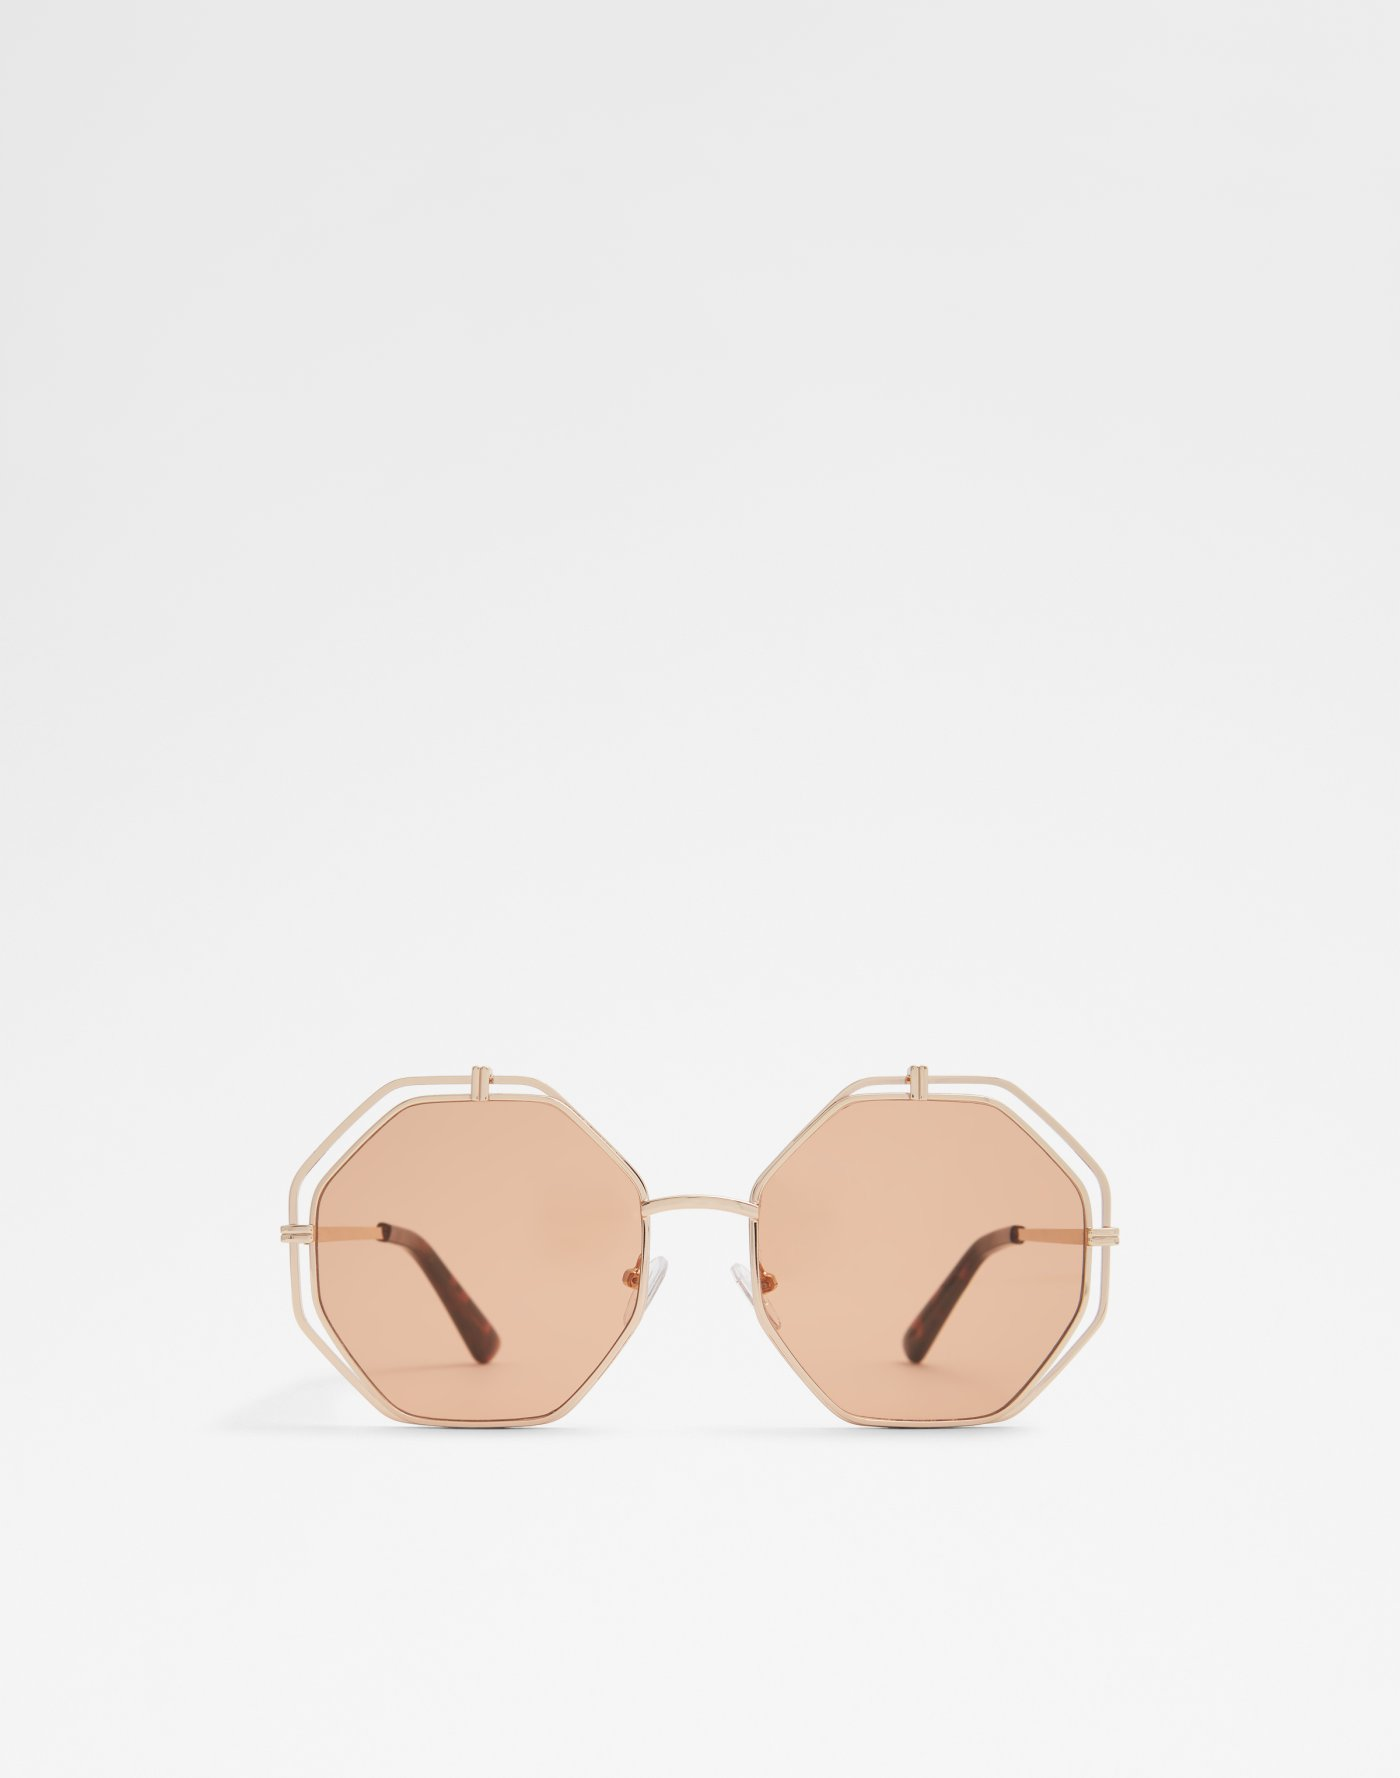 3f0a26fa1e01 Women's Sunglasses | Fashion Sunglasses | ALDO US | Aldoshoes.com US